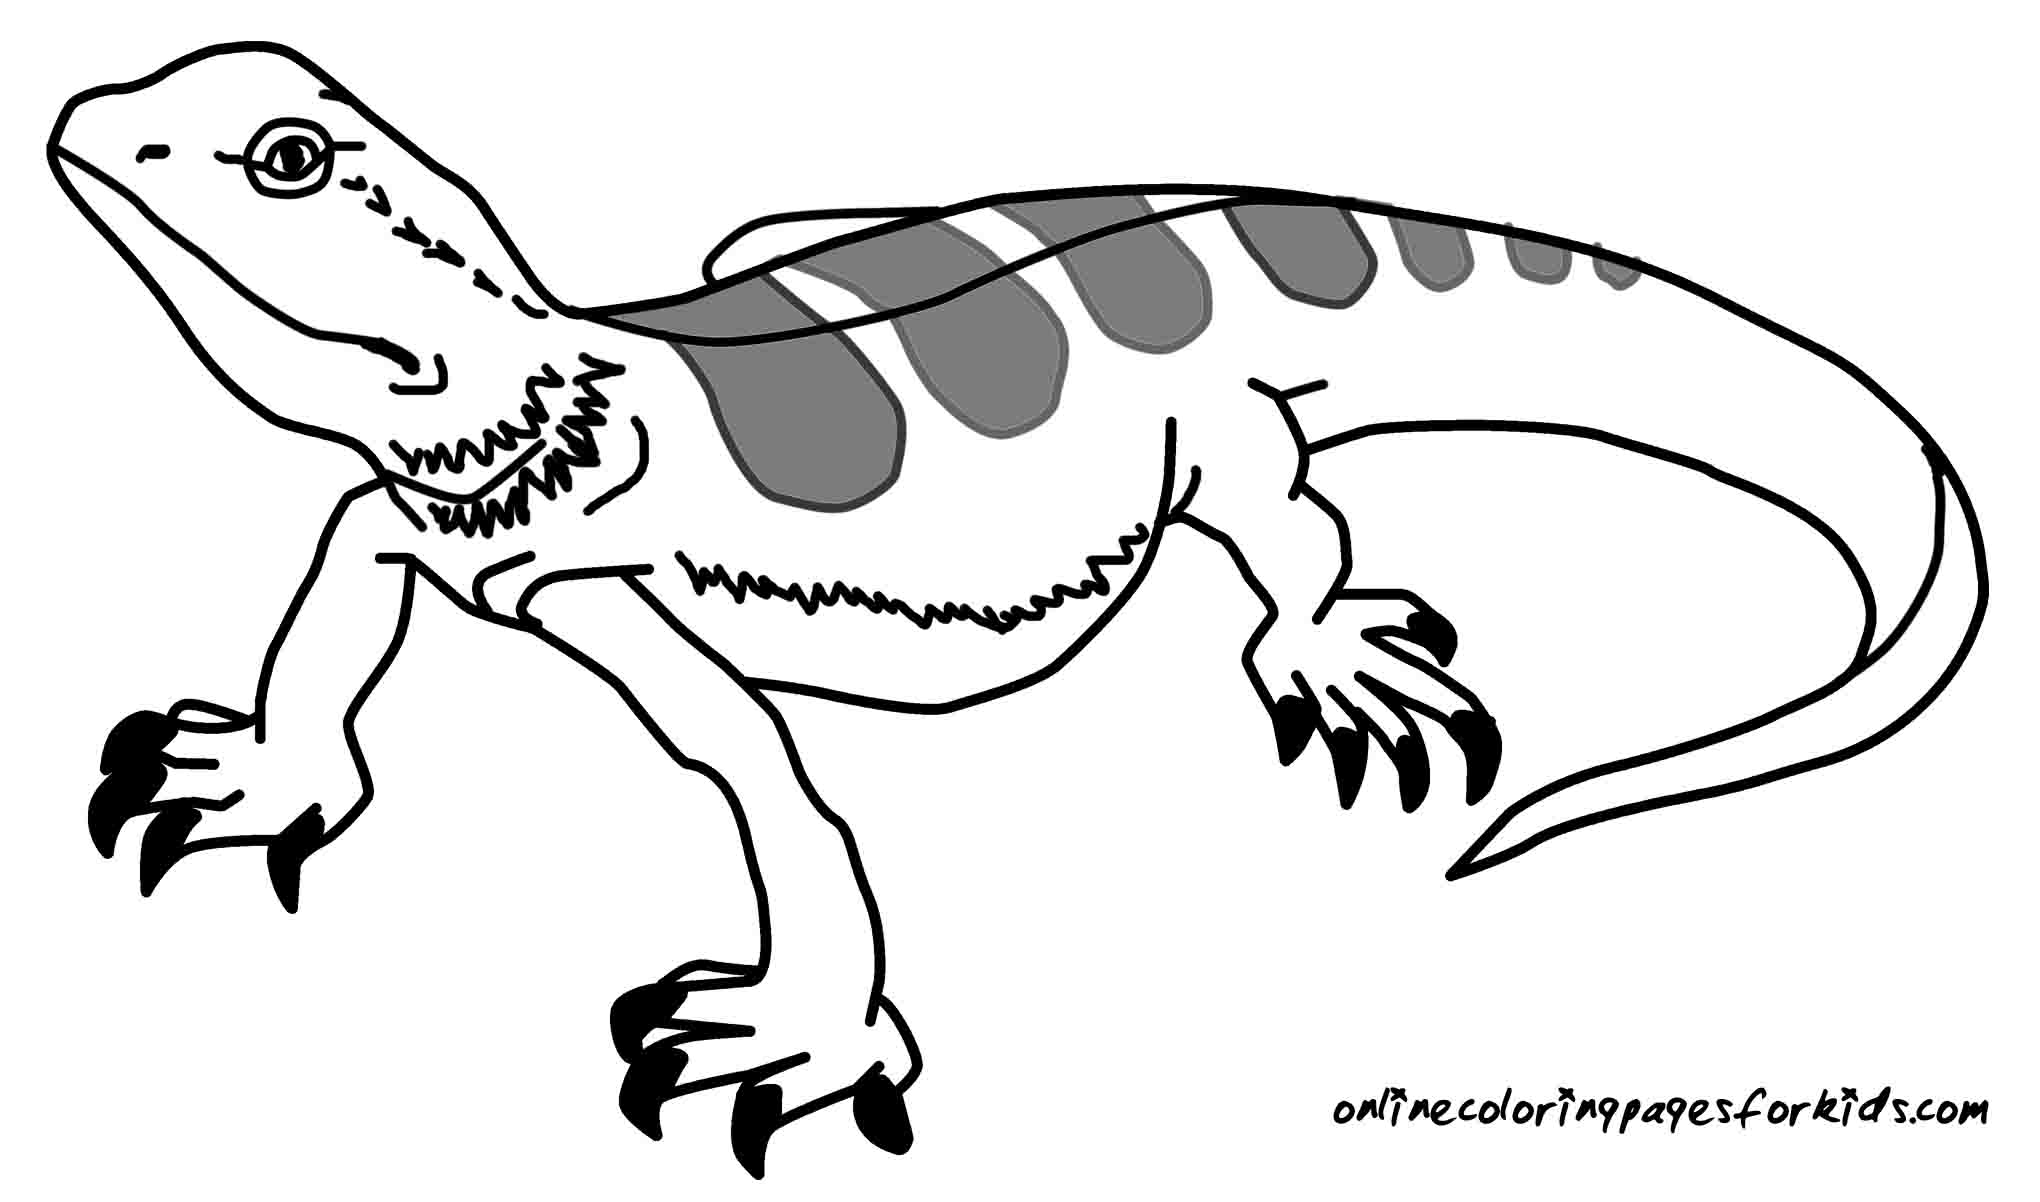 printable lizard coloring pages kids colorinenet 26748